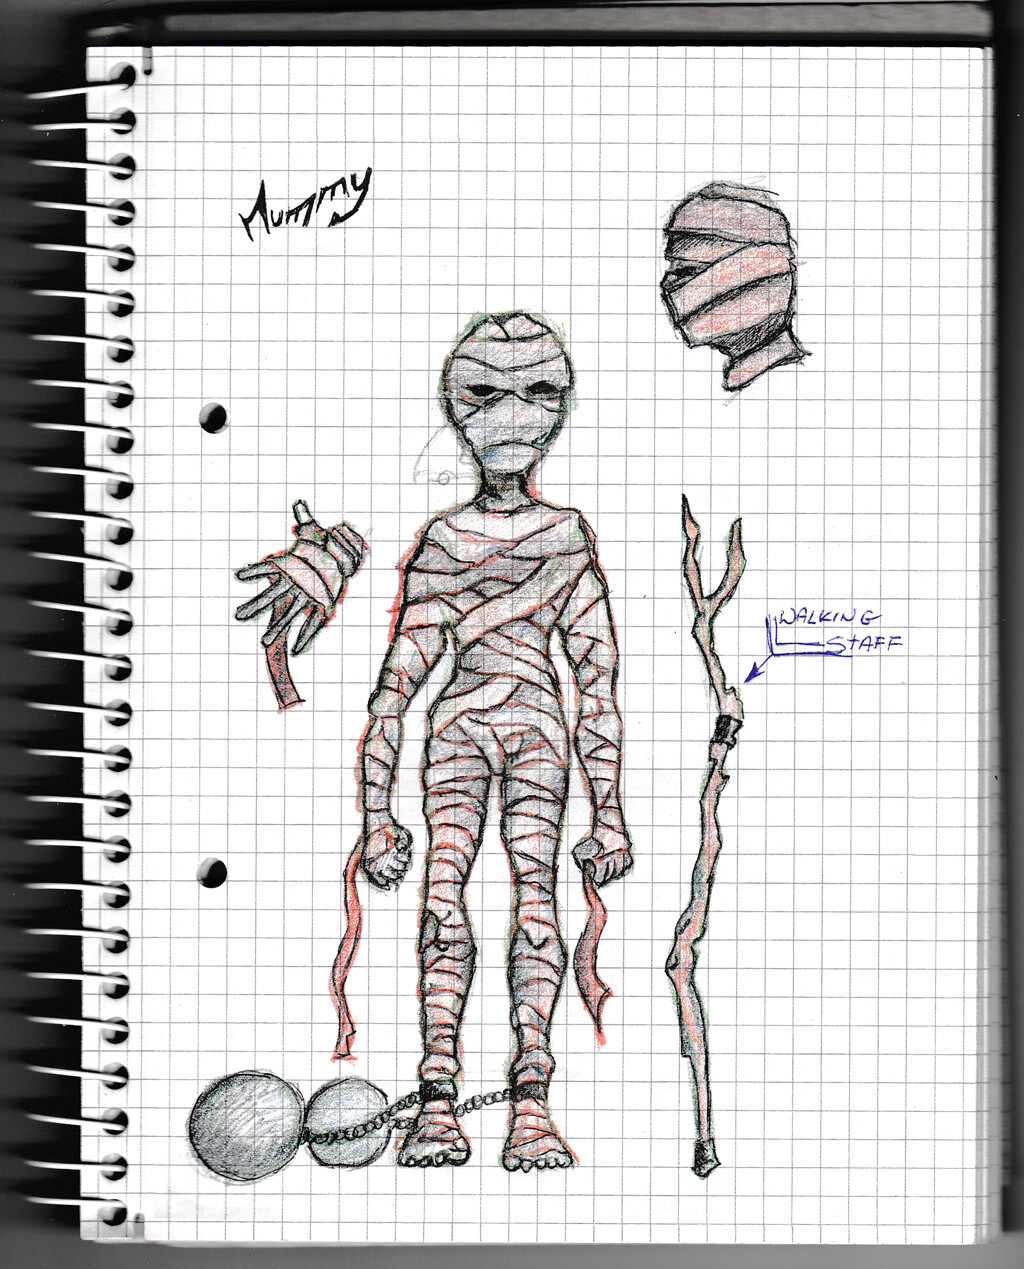 character, sketch, pencil, monster, creature, mummy,